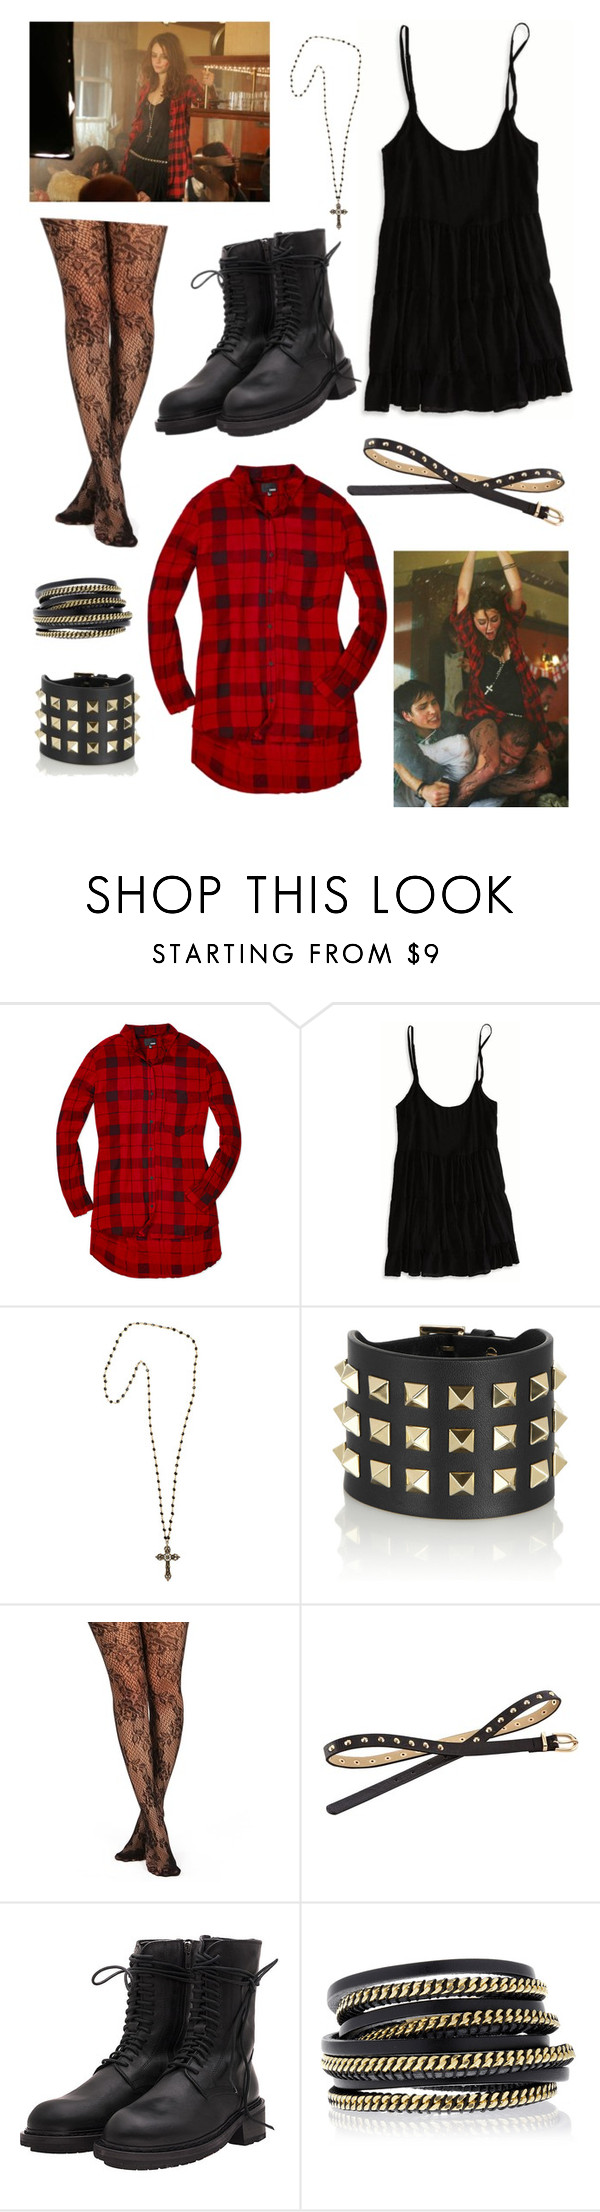 """""""Effy x stonem x"""" by oliviamorrisseybeatle ❤ liked on Polyvore featuring Effy Jewelry, Wilfred Free, American Eagle Outfitters, Heather Gardner, Valentino, Red Herring, Ann Demeulemeester and LK Designs"""